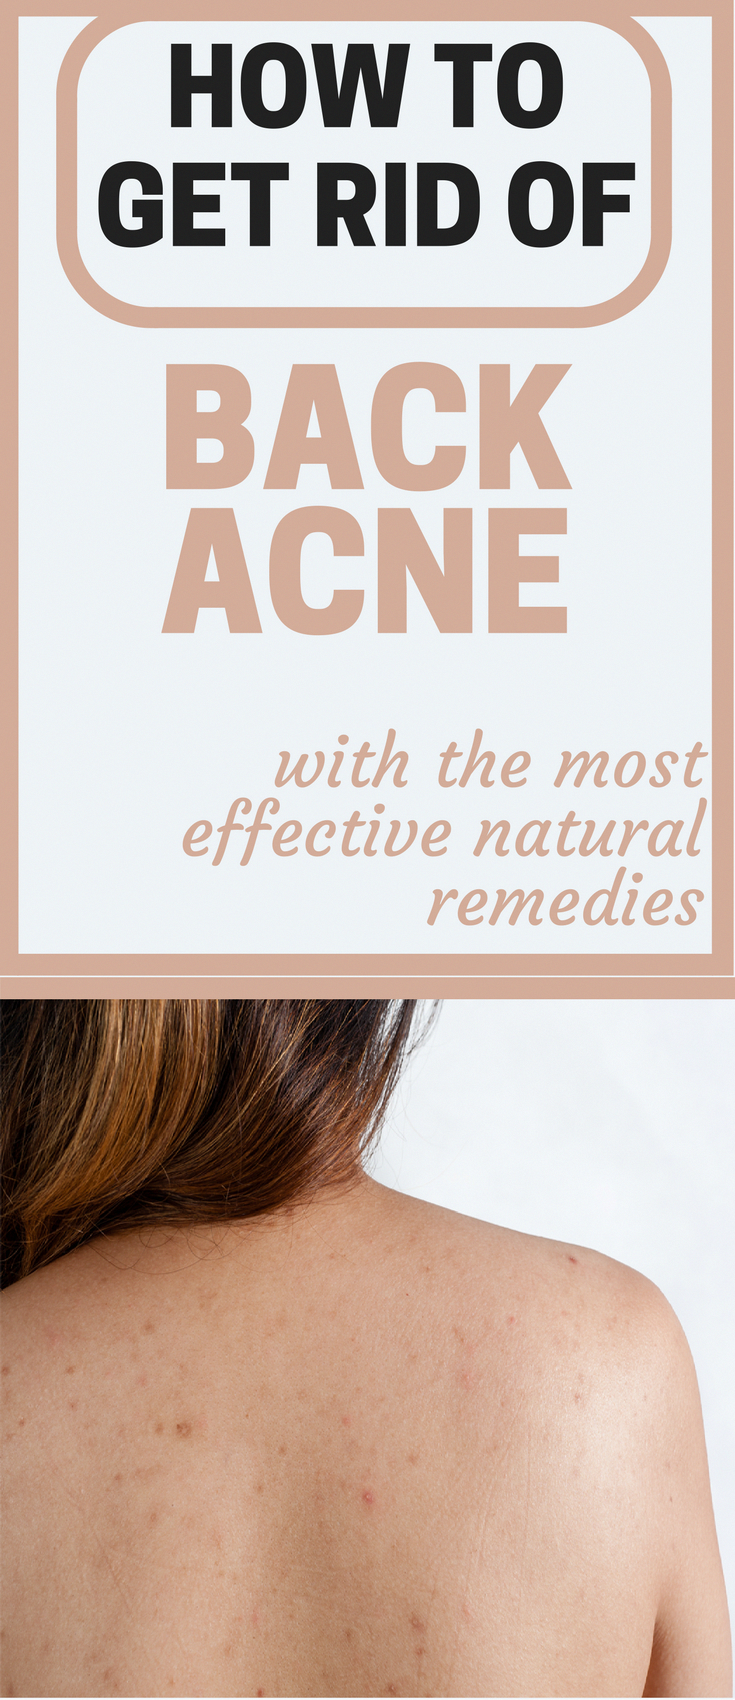 How to get rid of back acne with the most effective natural remedies